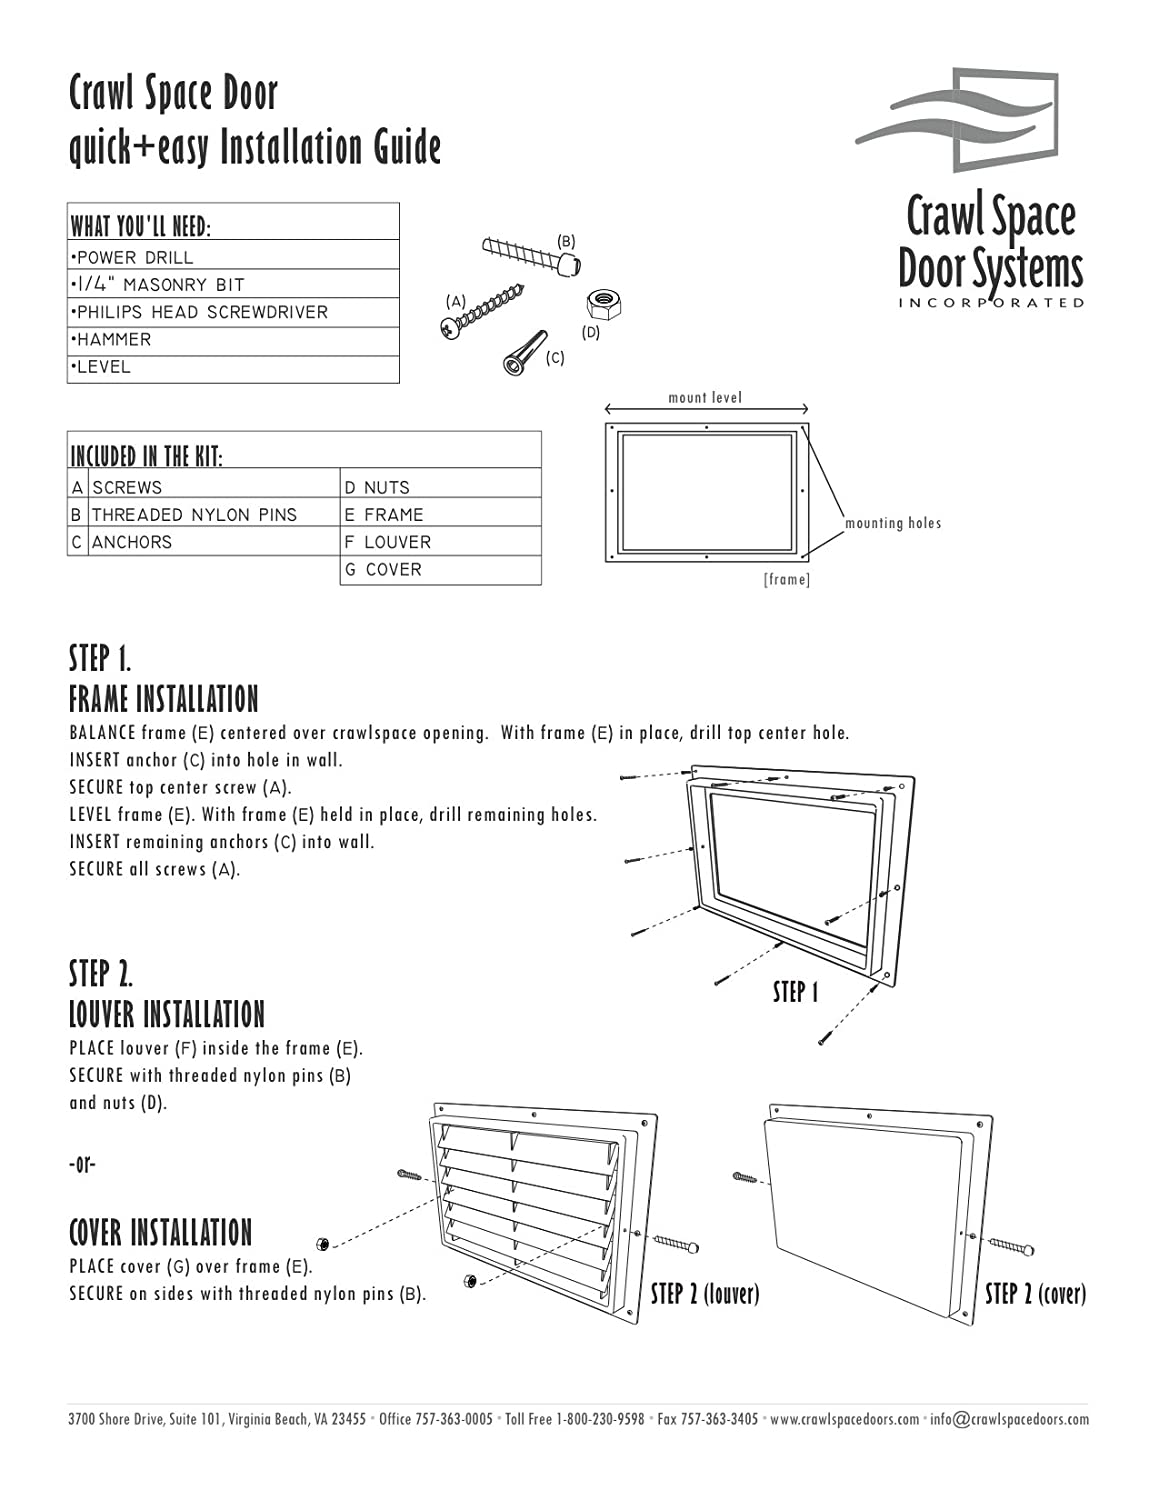 Crawl Space Door With Louvers For Crawlspace Access Wiring Diagram Manual Kx 155 Ventilation Or Encapsulation 20x32 Home Improvement